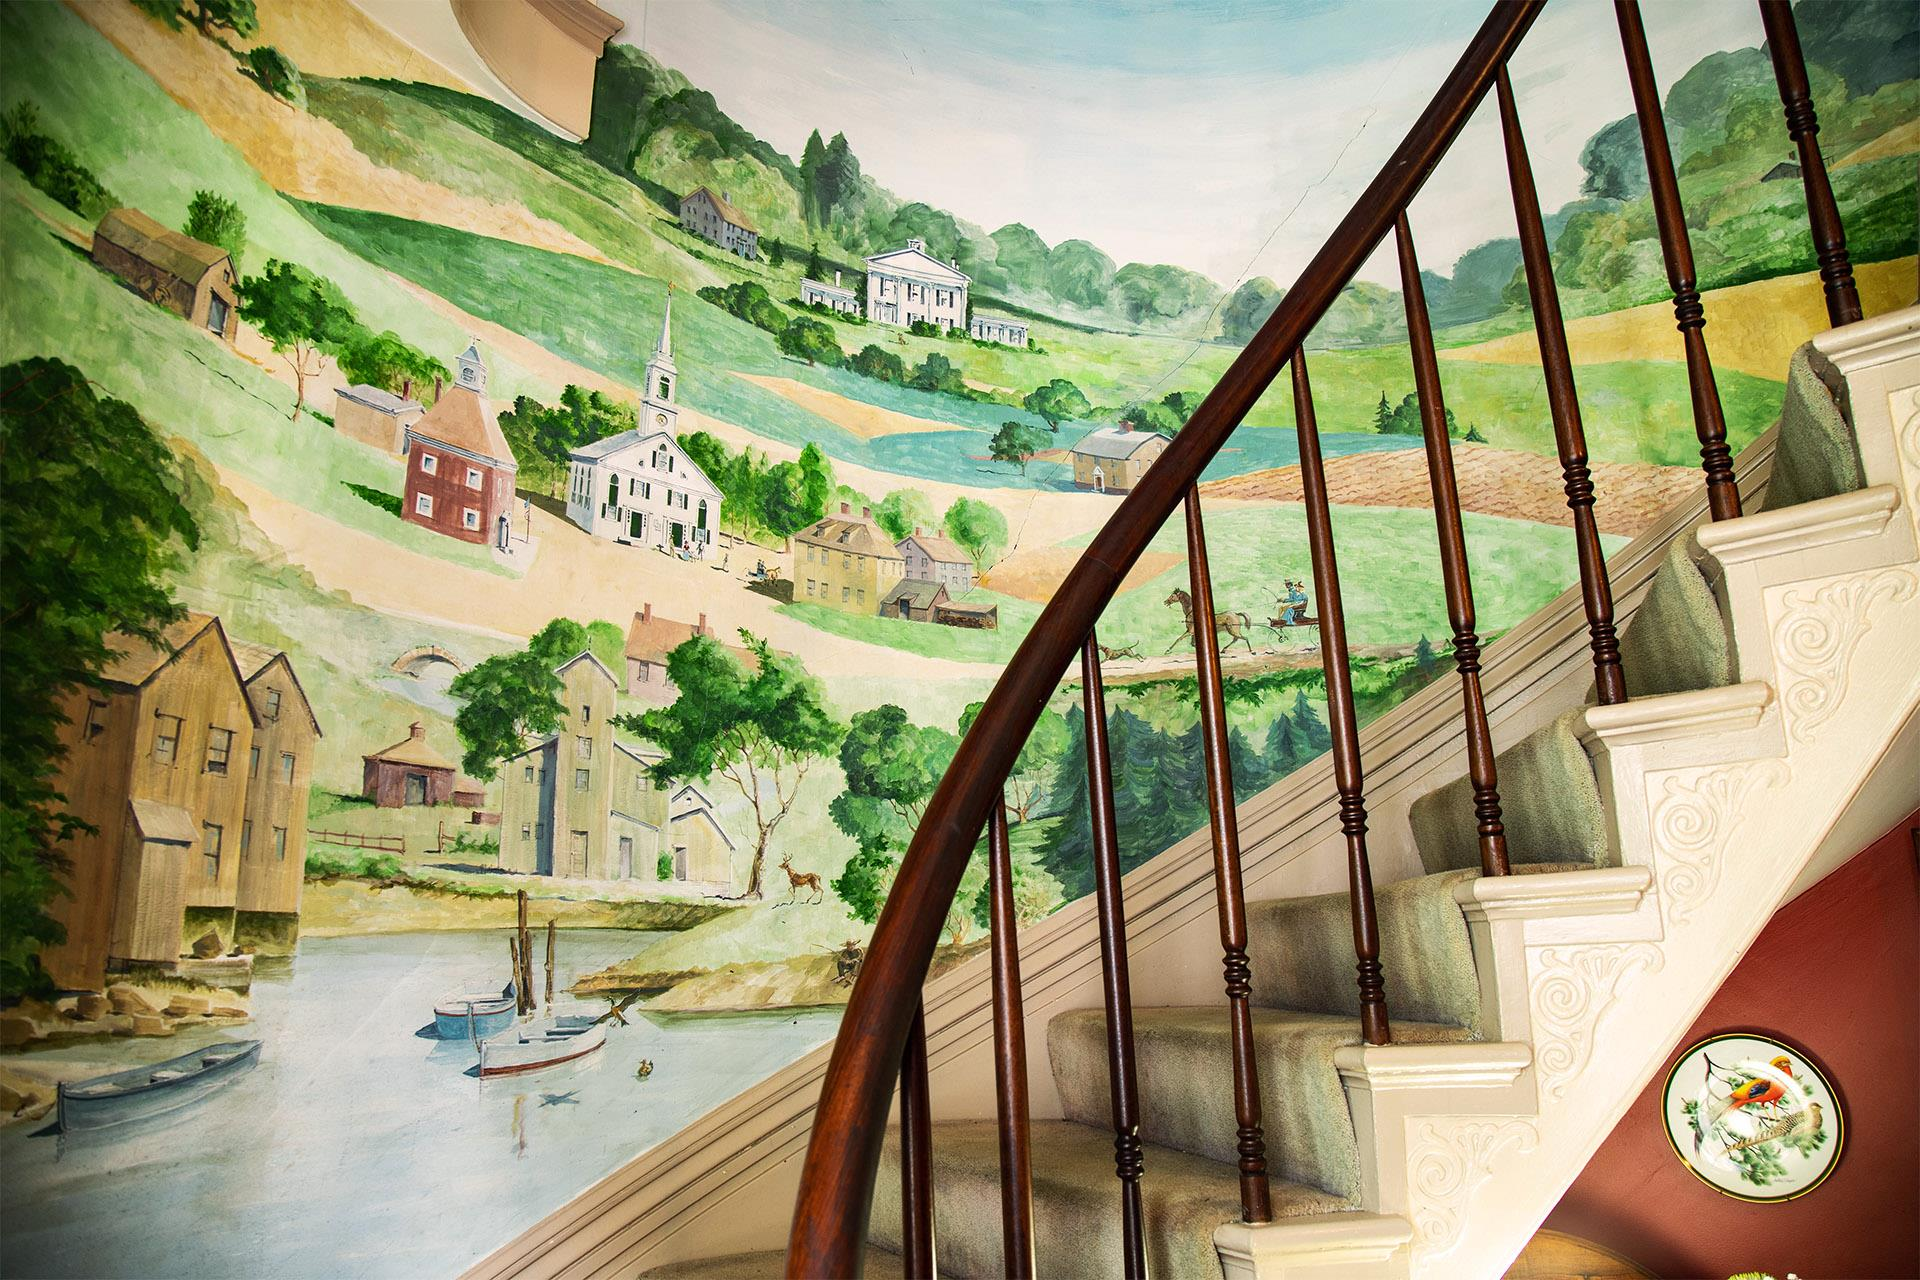 colorful-mural-on-wall-of-staircase.jpg